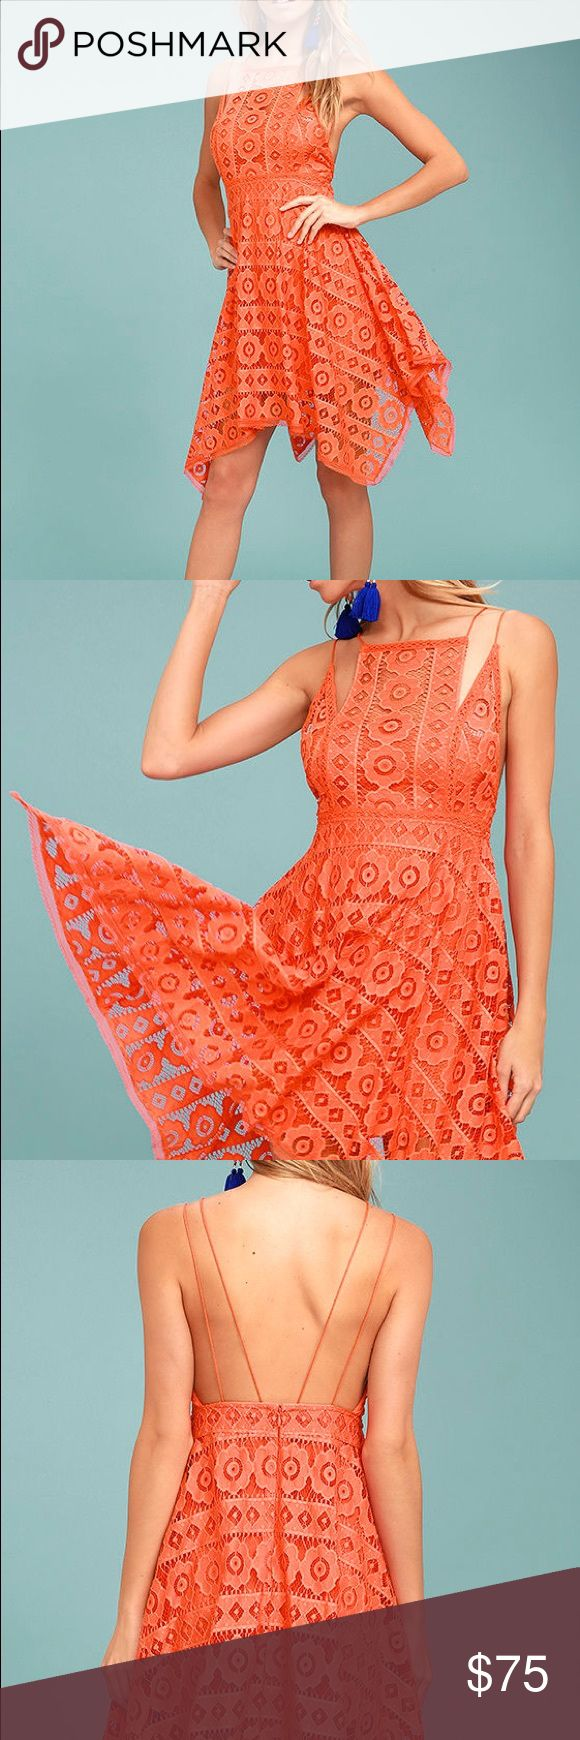 FREE PEOPLE  just like honey dress orange/coral New with department store tags size 0 The Free People Just Like Honey Coral Orange Lace Dress is as sweet-as-can-be! Romantic lace overlay forms this sleeveless dress with a unique, high neckline, and crochet lace princess seams. Skirt falls to a flirty length with handkerchief hem. Braided double straps and hidden back zipper/clasp. Lined. Self: 72% Nylon, 28% Cotton. Lining: 100% Rayon. Hand Wash Cold. Imported. Free People Dresses